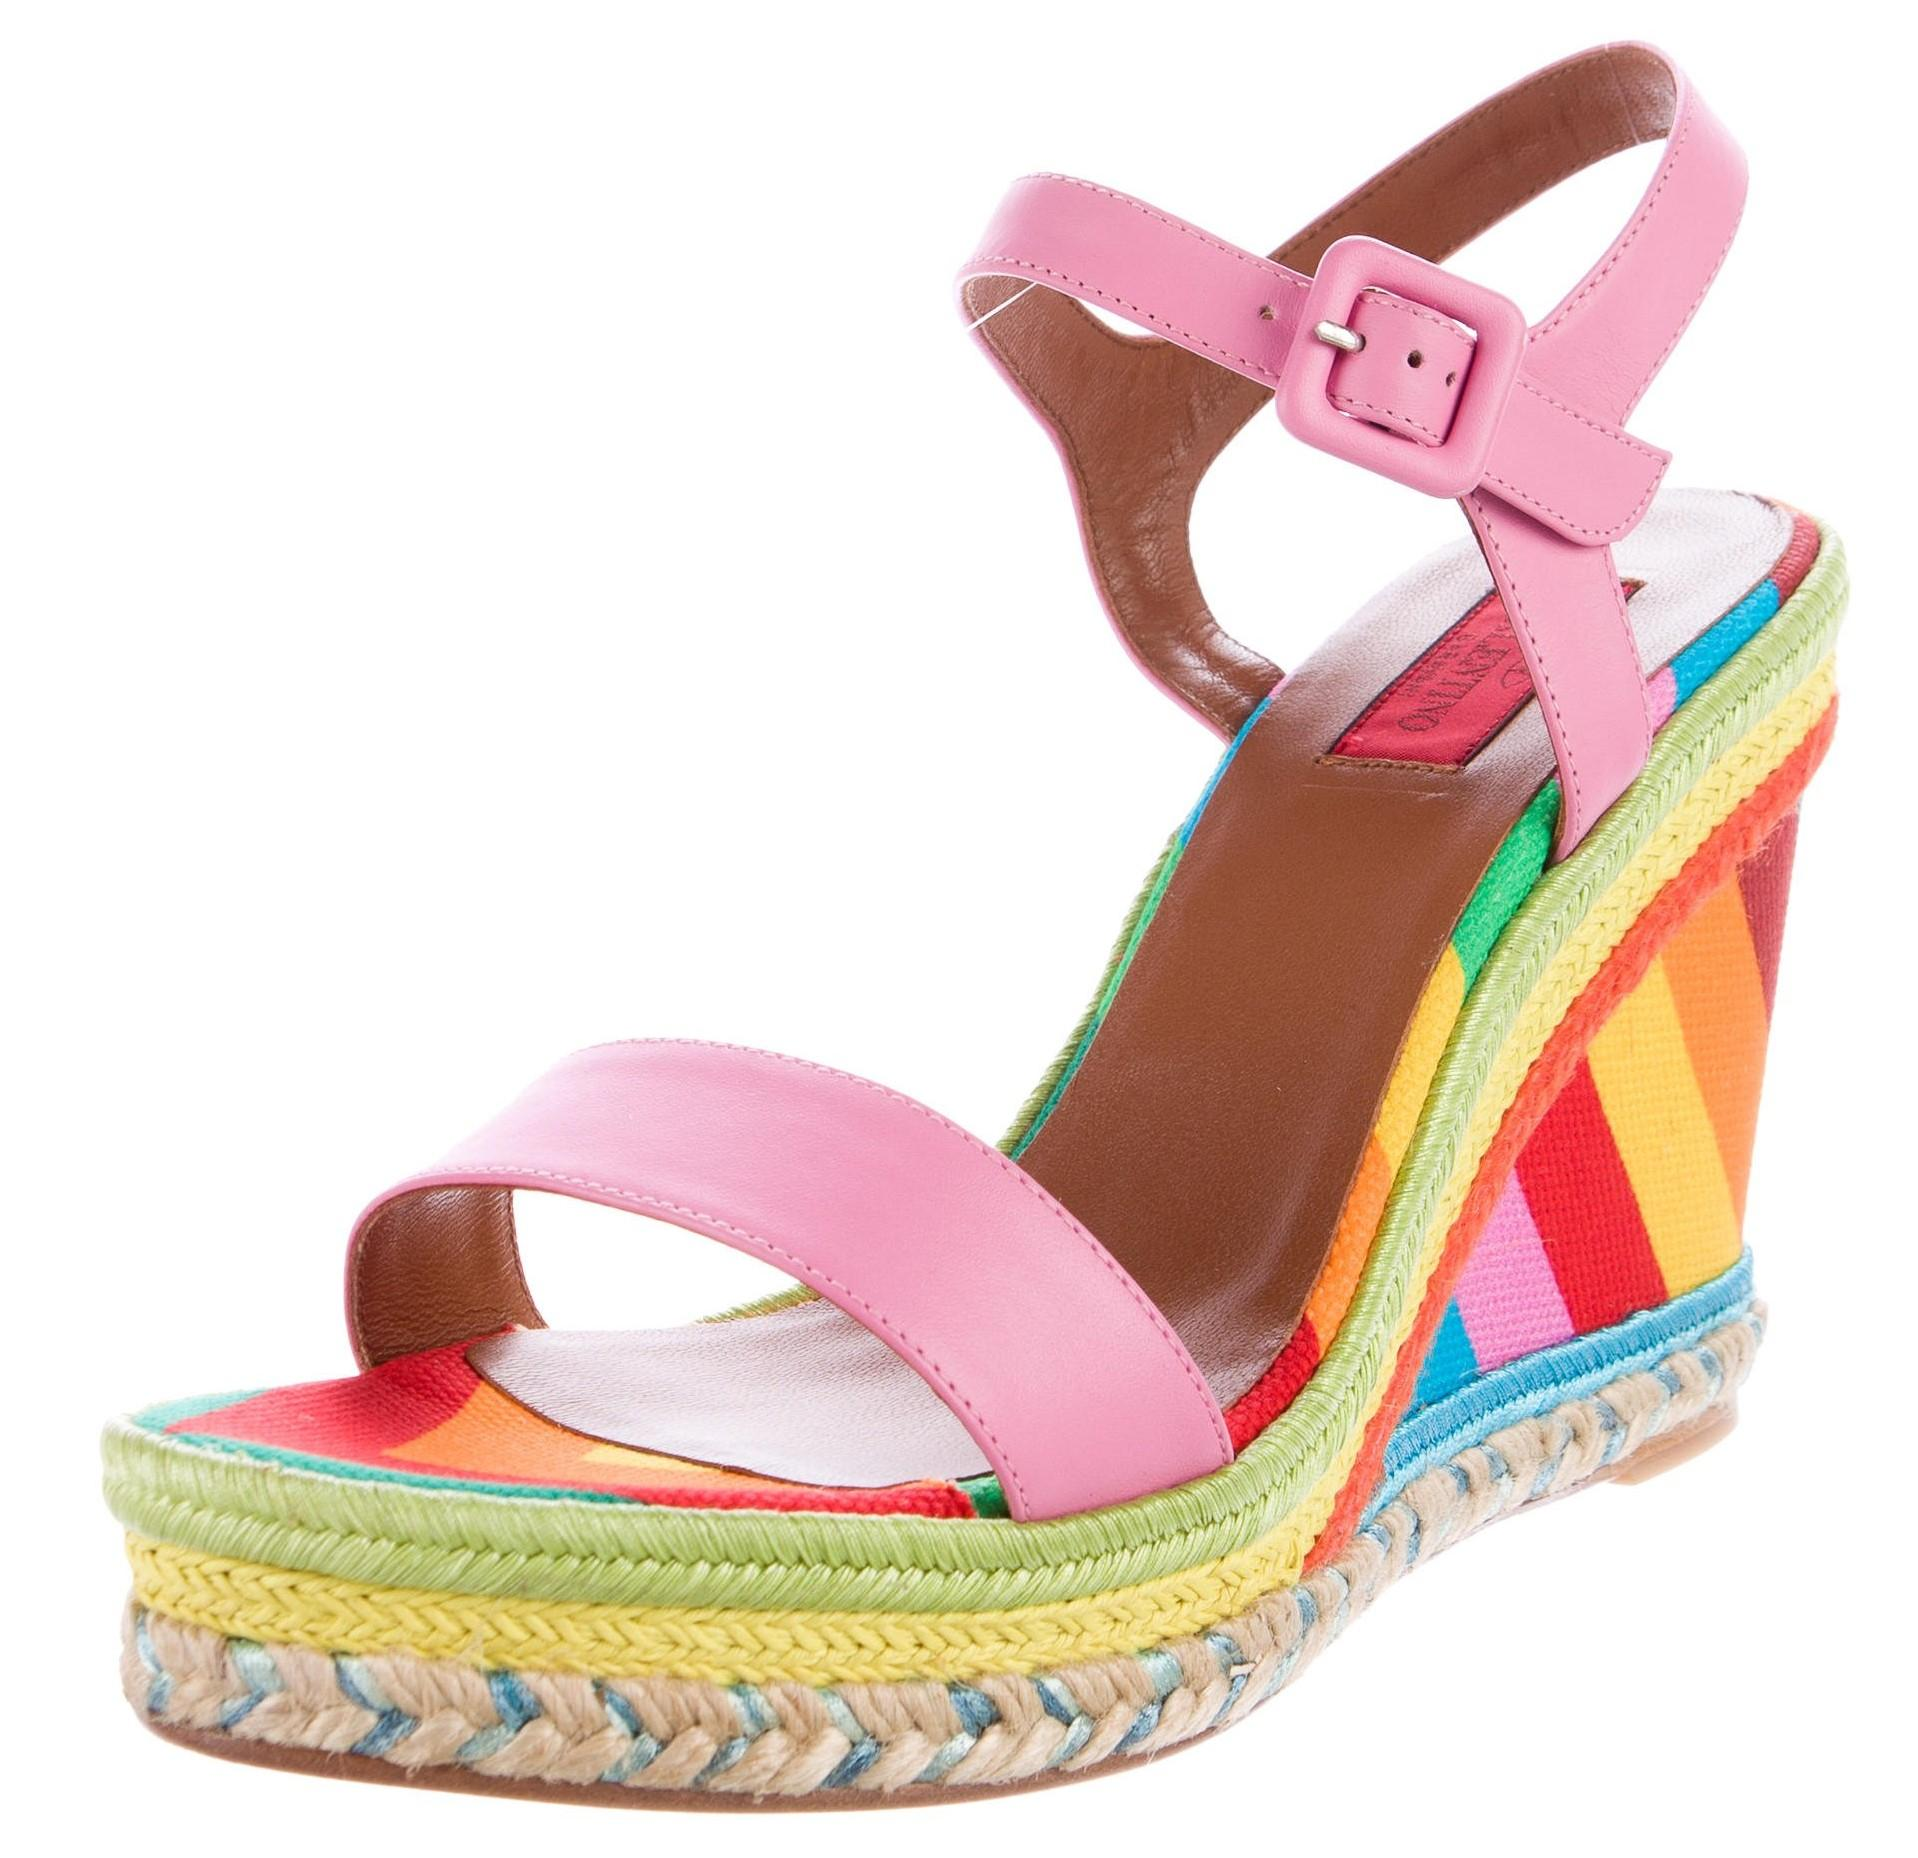 Valentino Green Orange Yellow Pink Leather 1973 Platform Wedges Size US 11 Regular (M, B)